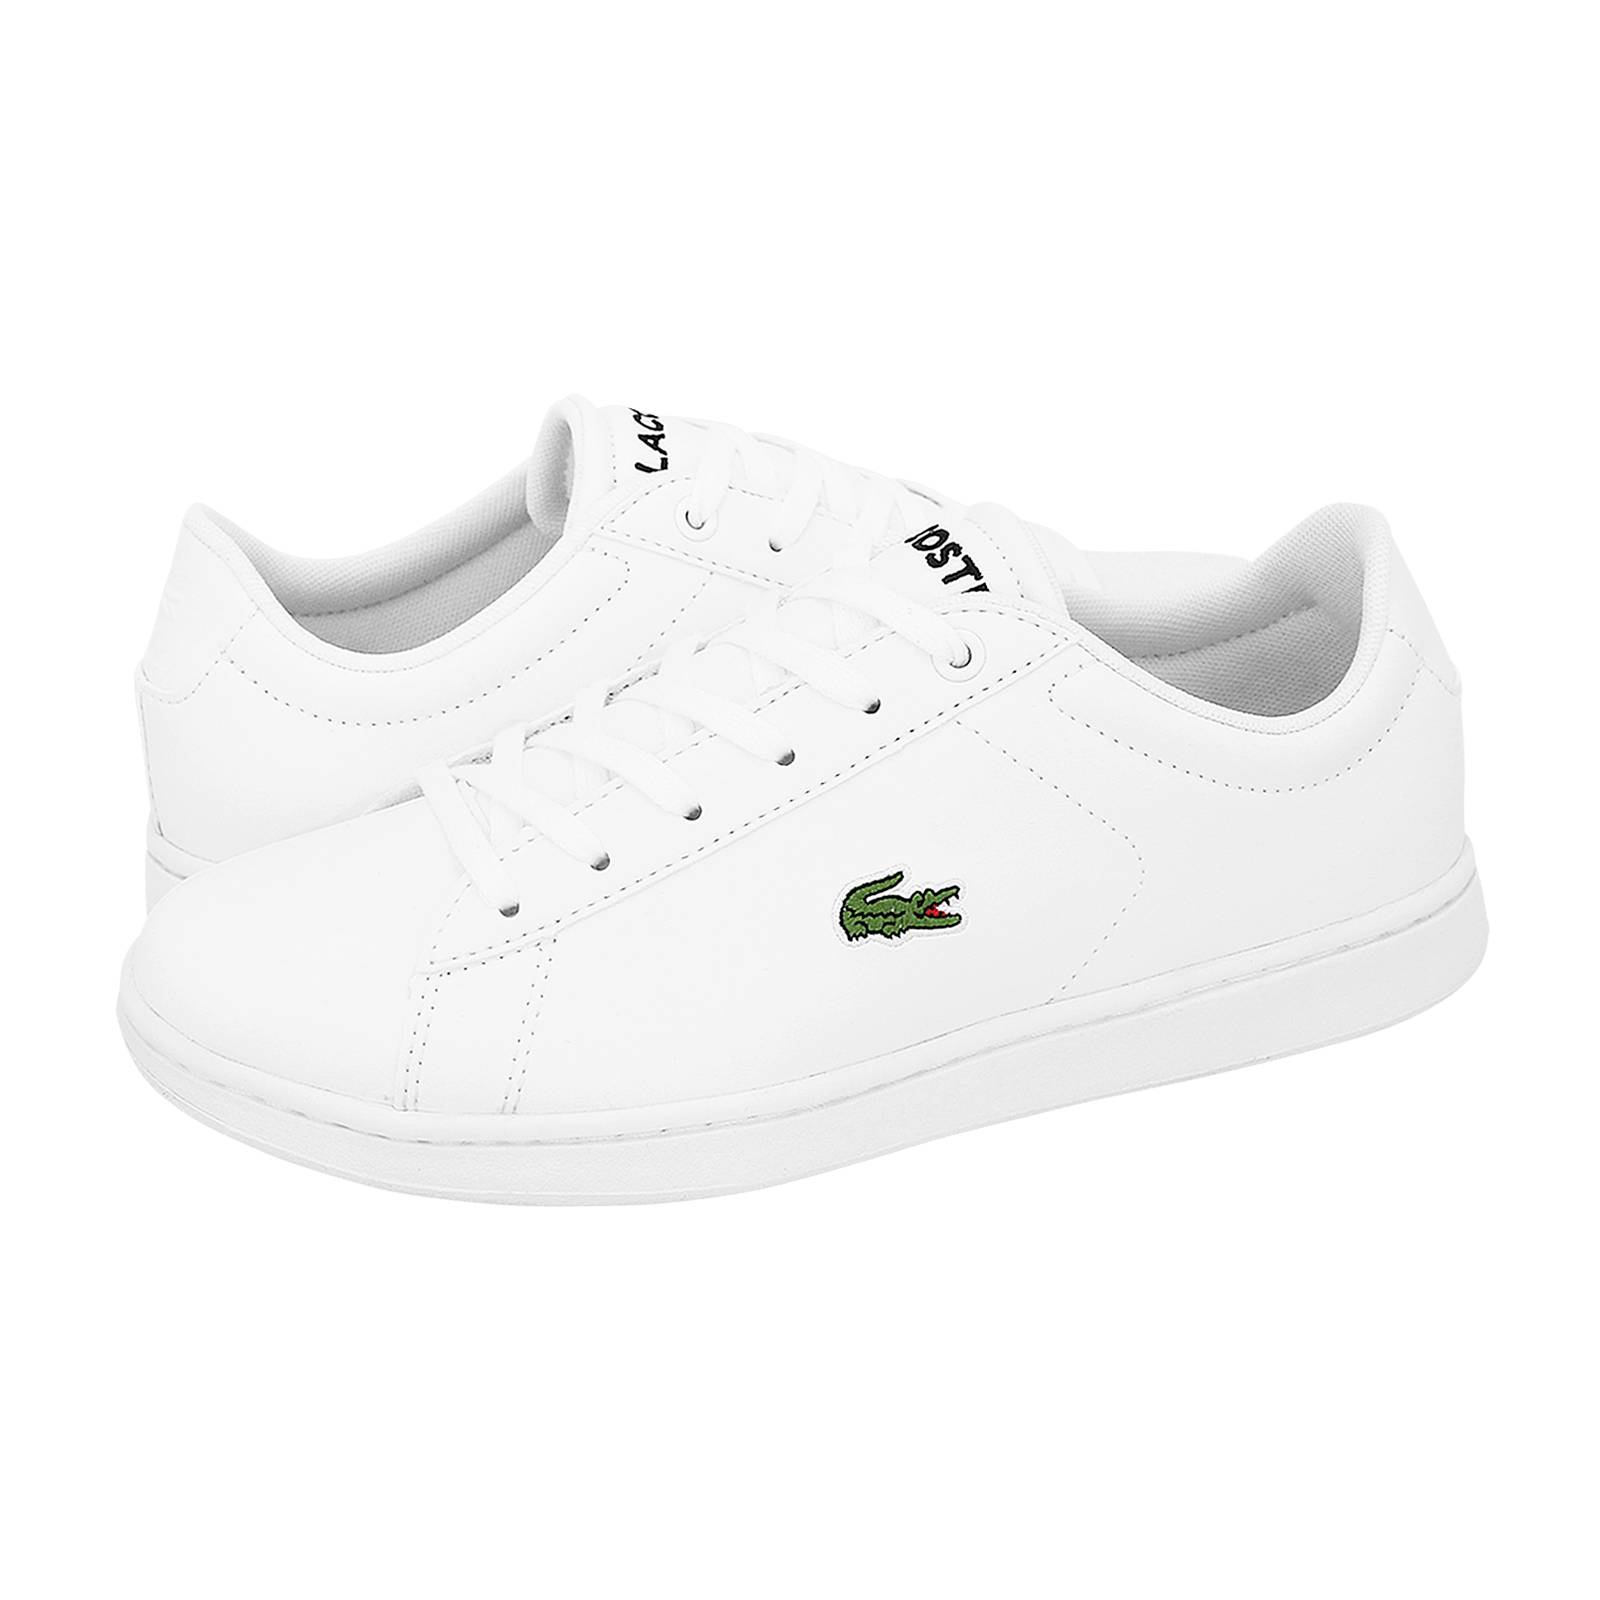 3ab994432 Carnaby Evo 119 7 SUJ - Lacoste Casual kids  shoes made of synthetic ...